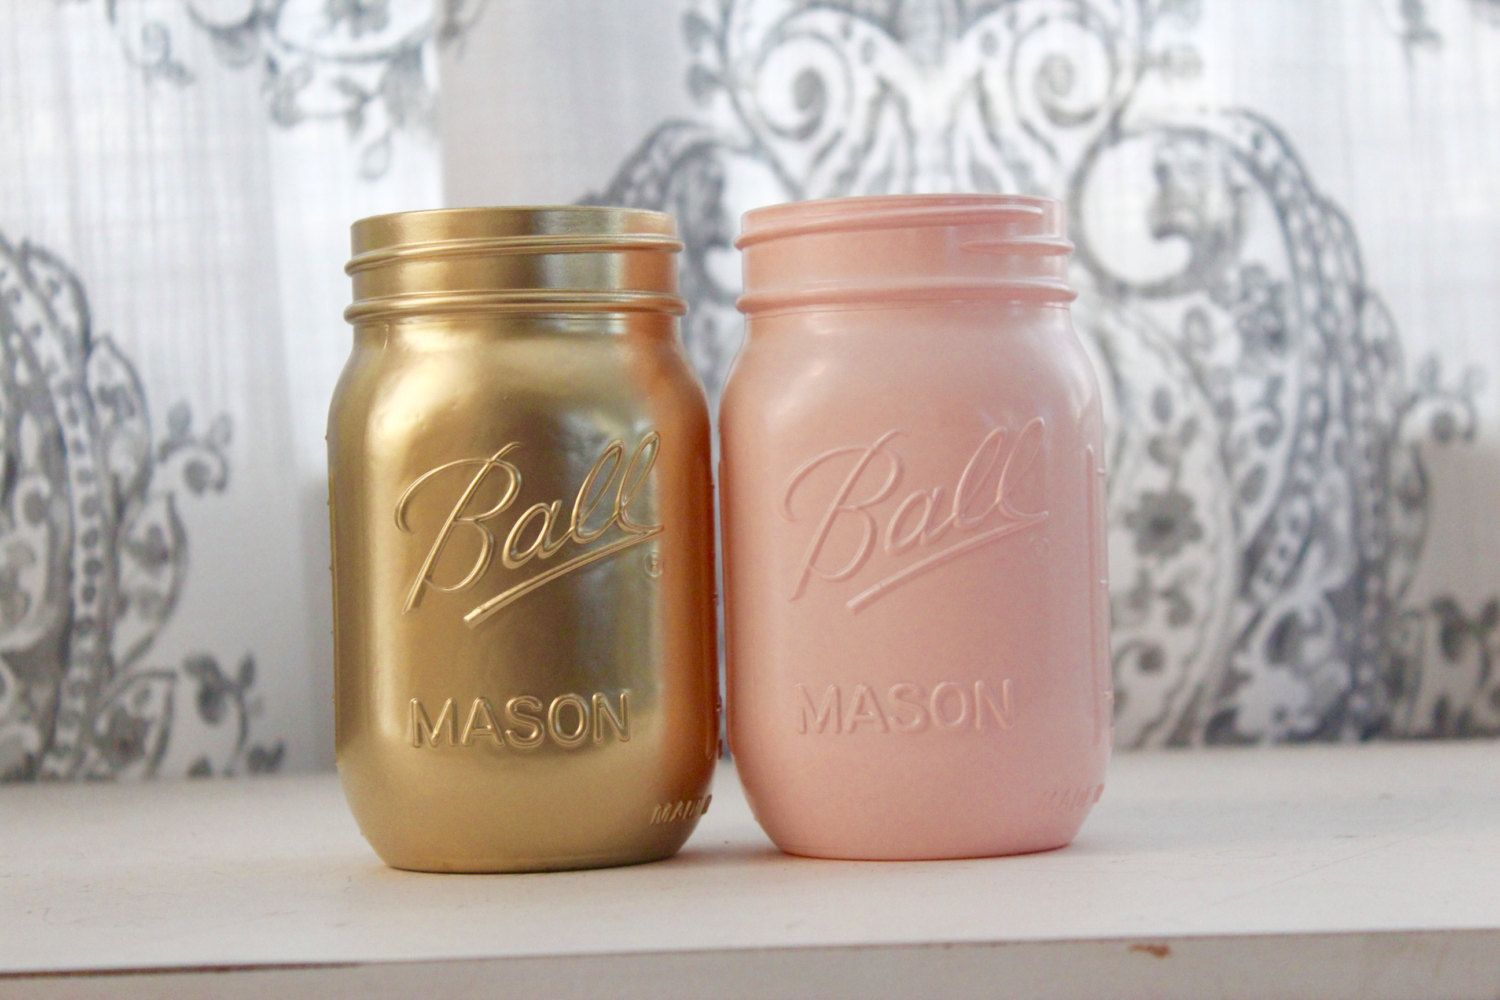 What a delicious little mason jar set pink and gold side by side